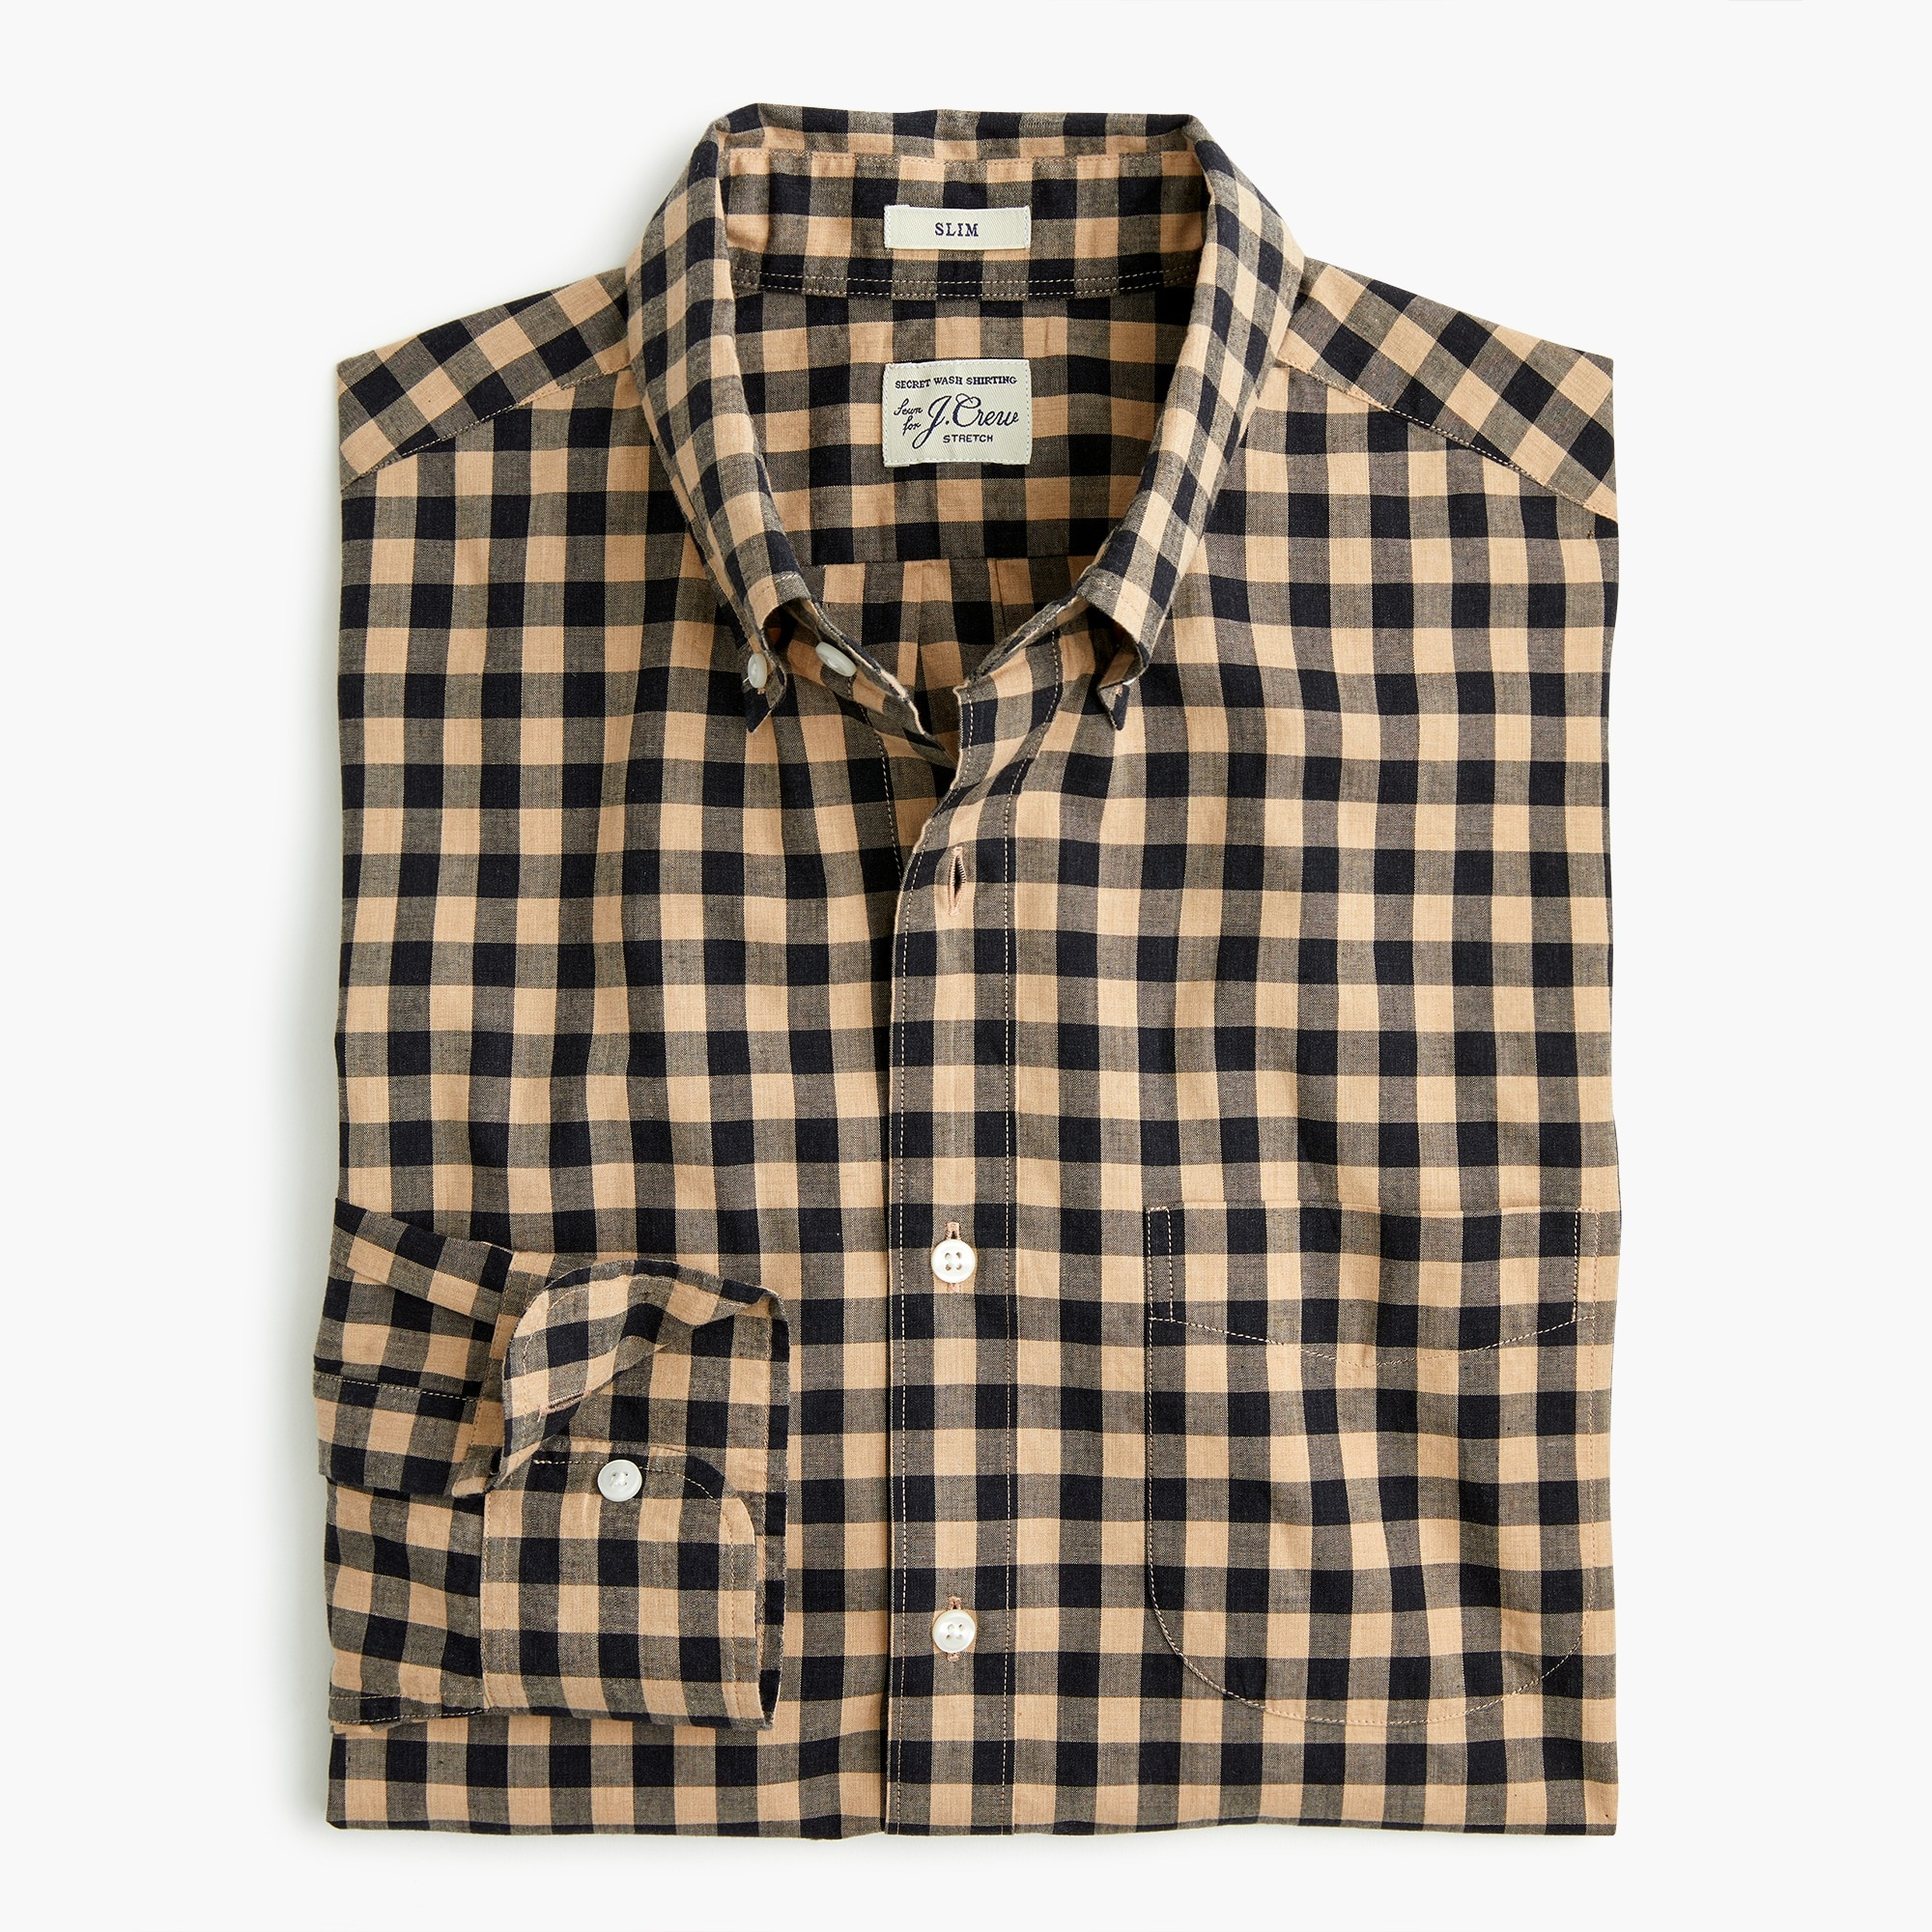 Image 1 for Slim stretch Secret Wash shirt in heather poplin gingham